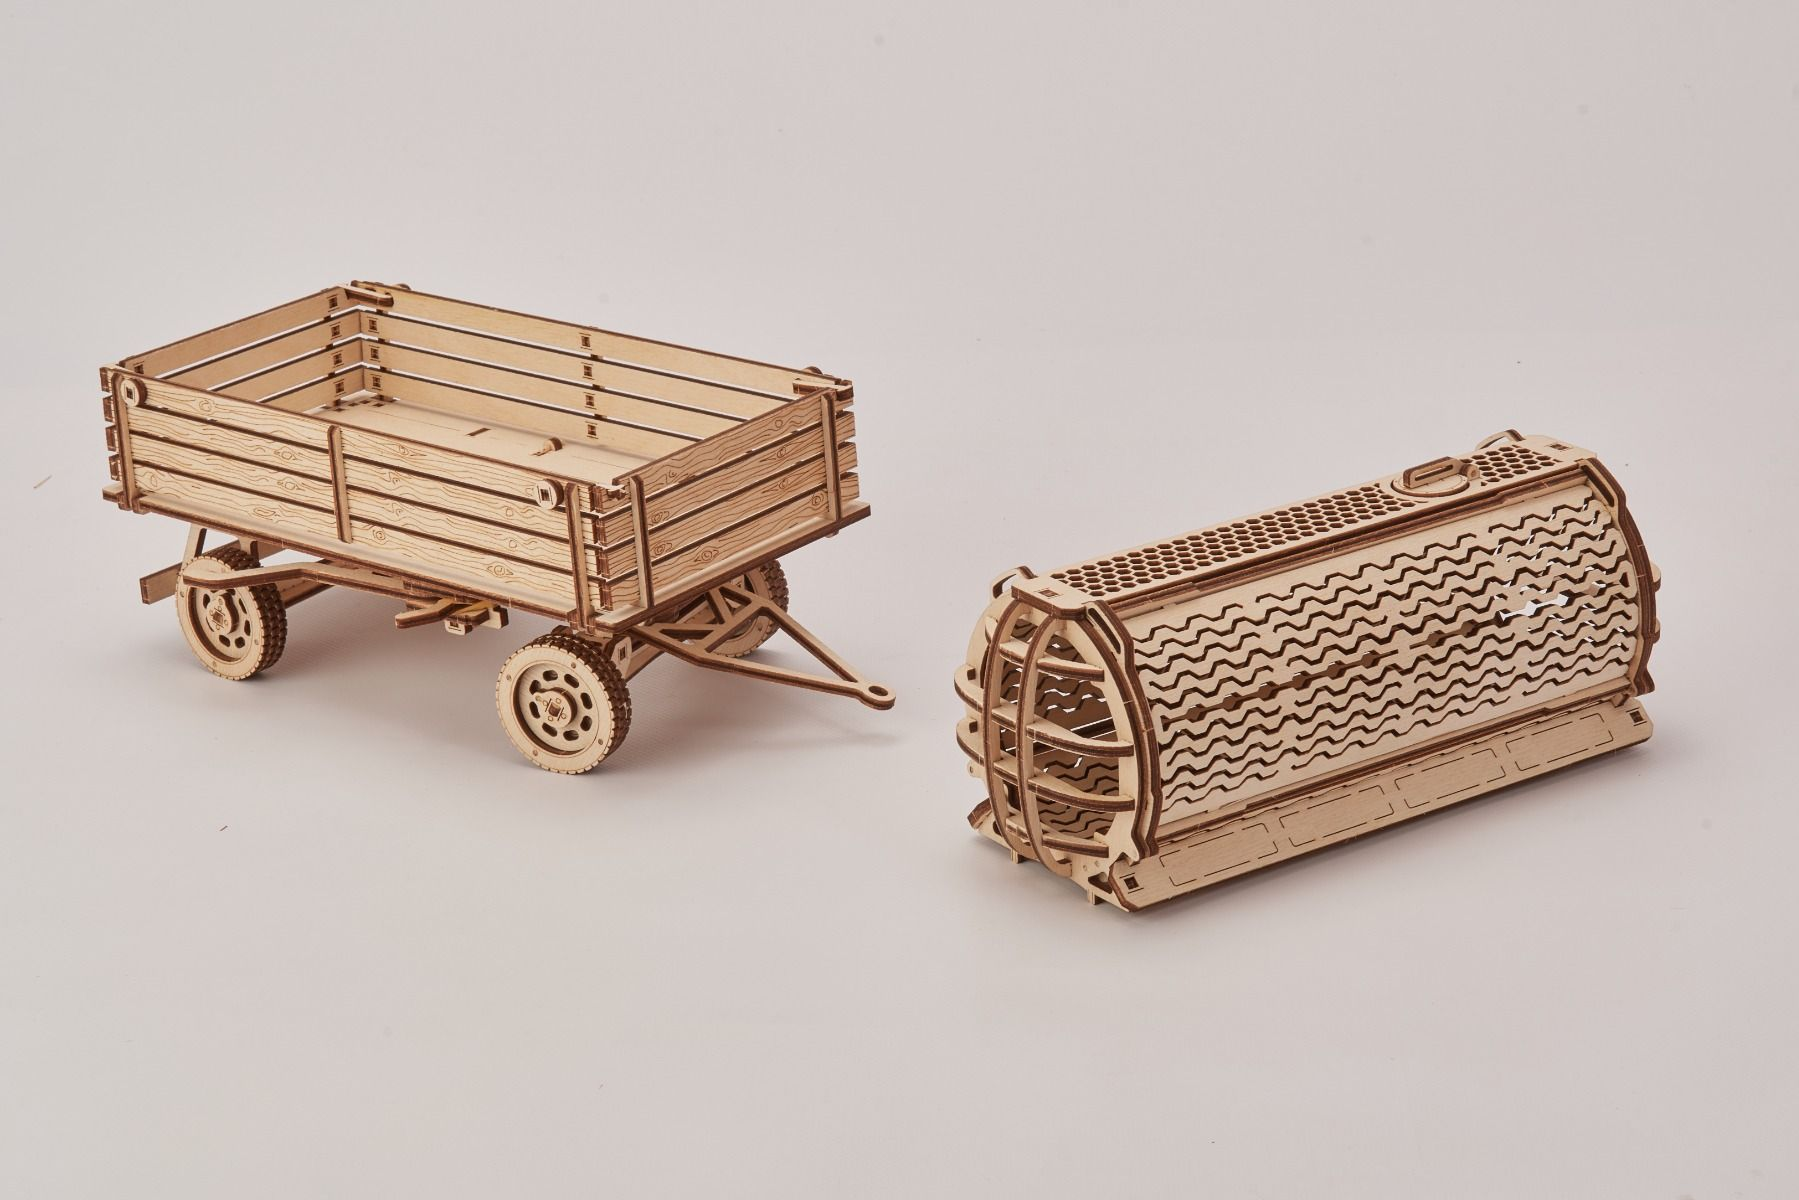 Wood Trick Tractor - Trailer for Tractor